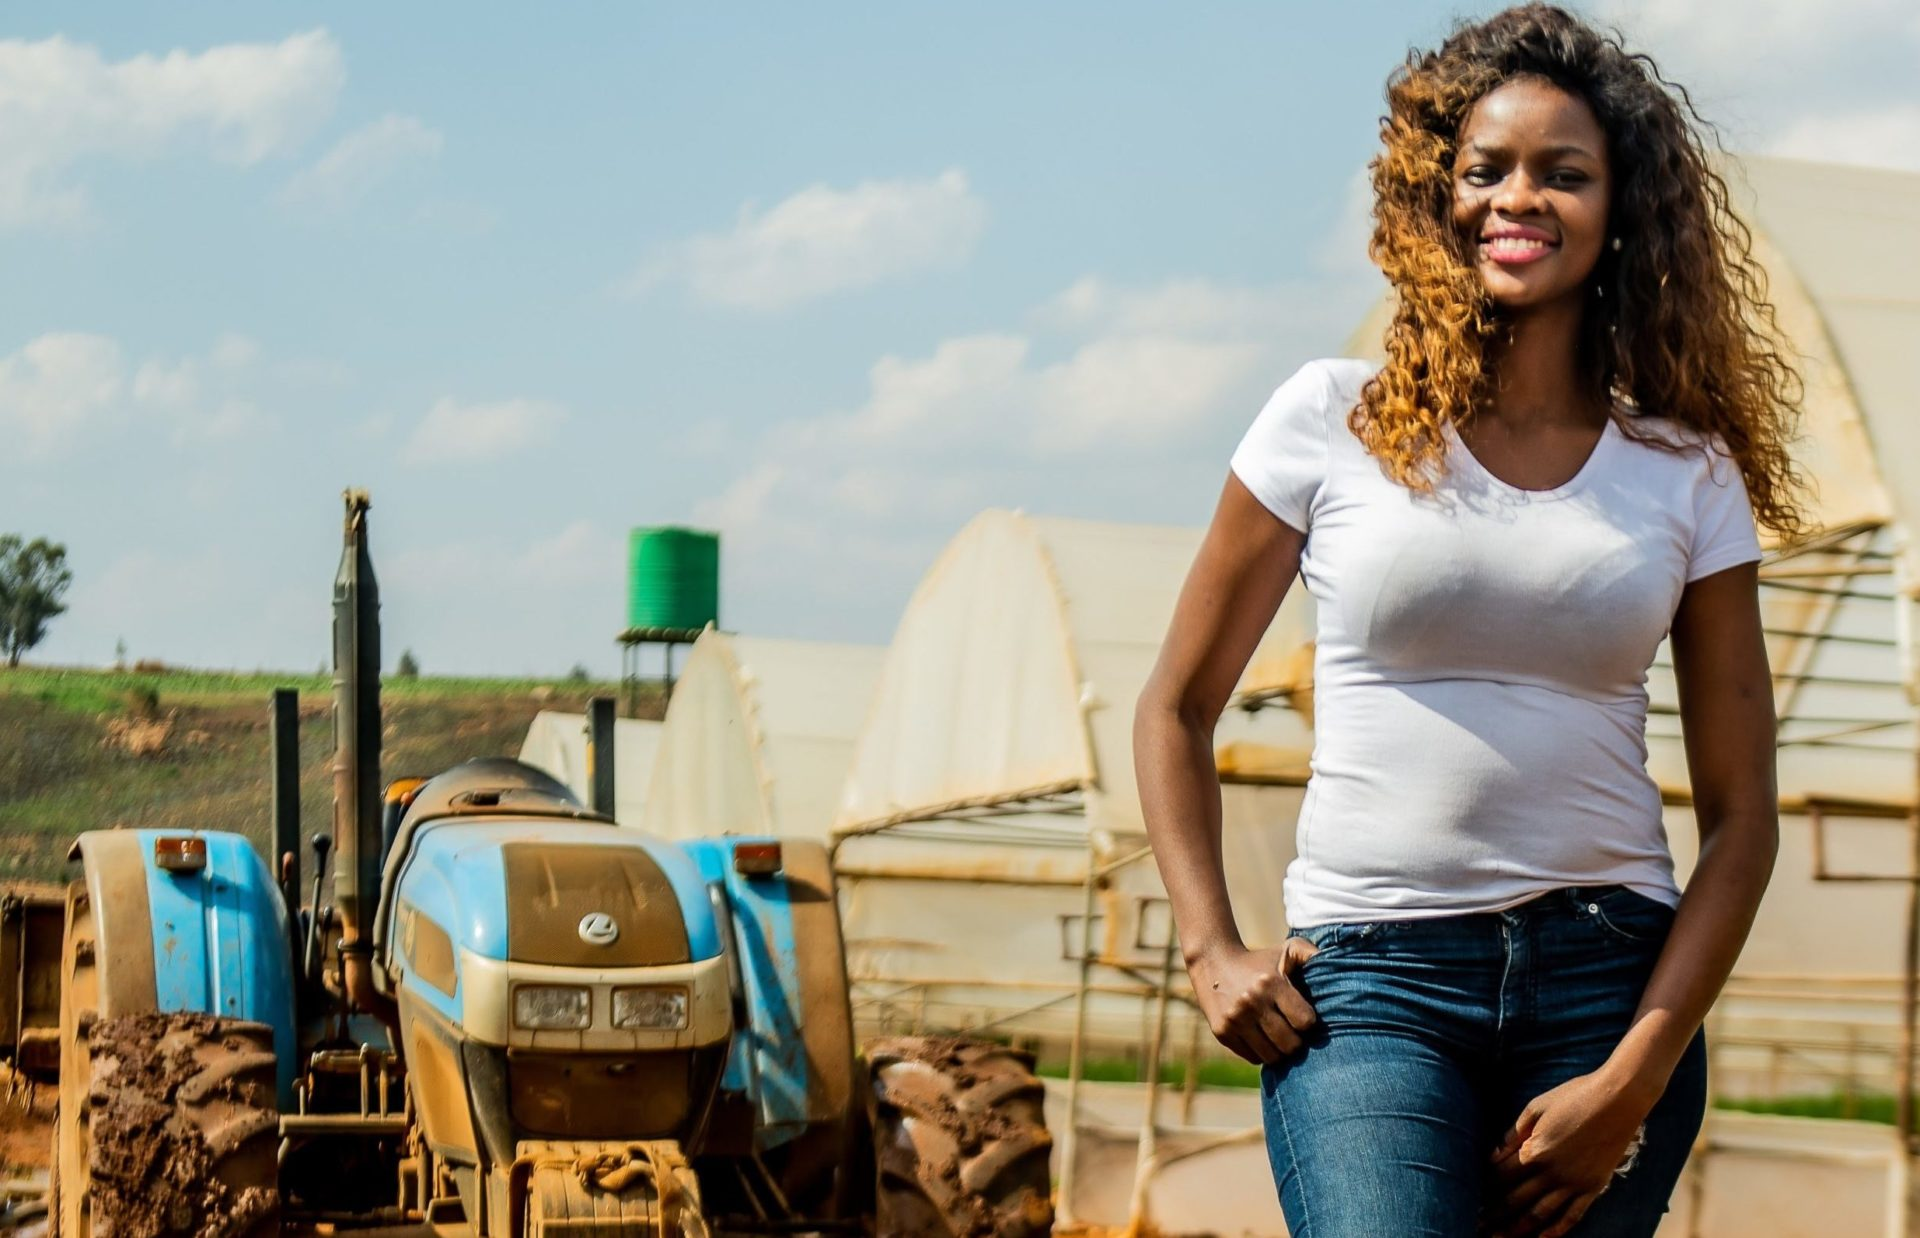 CEO and owner of VT Harvest, Vuthlari Chauke left her posh Sandton job to pursue a career as a farmer.